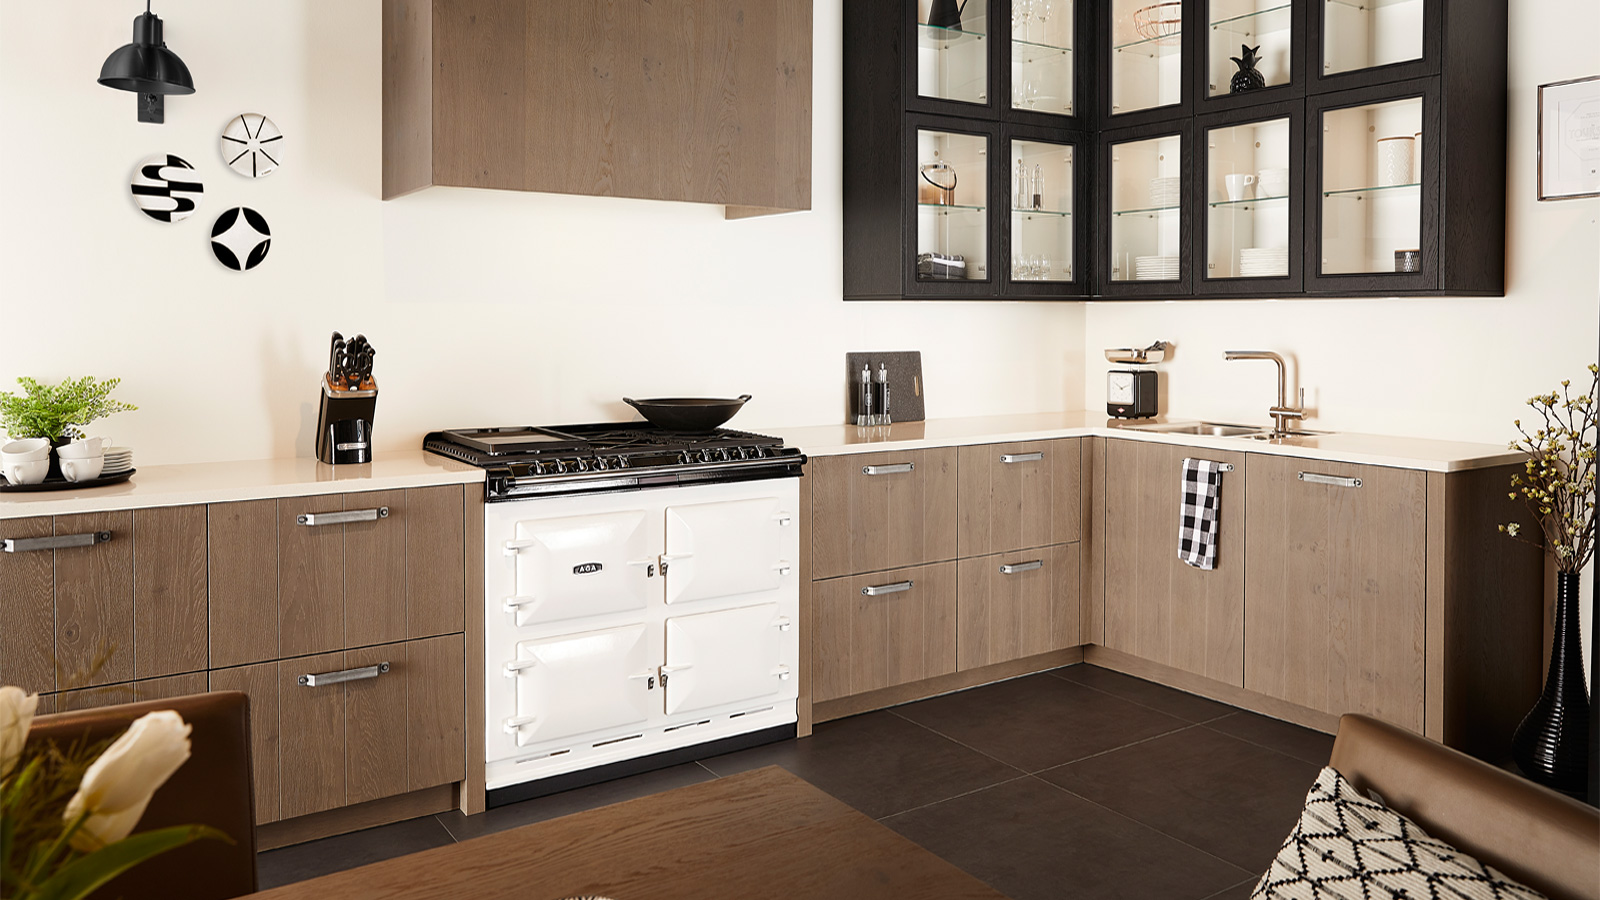 Keller Kitchens introduces Winchester